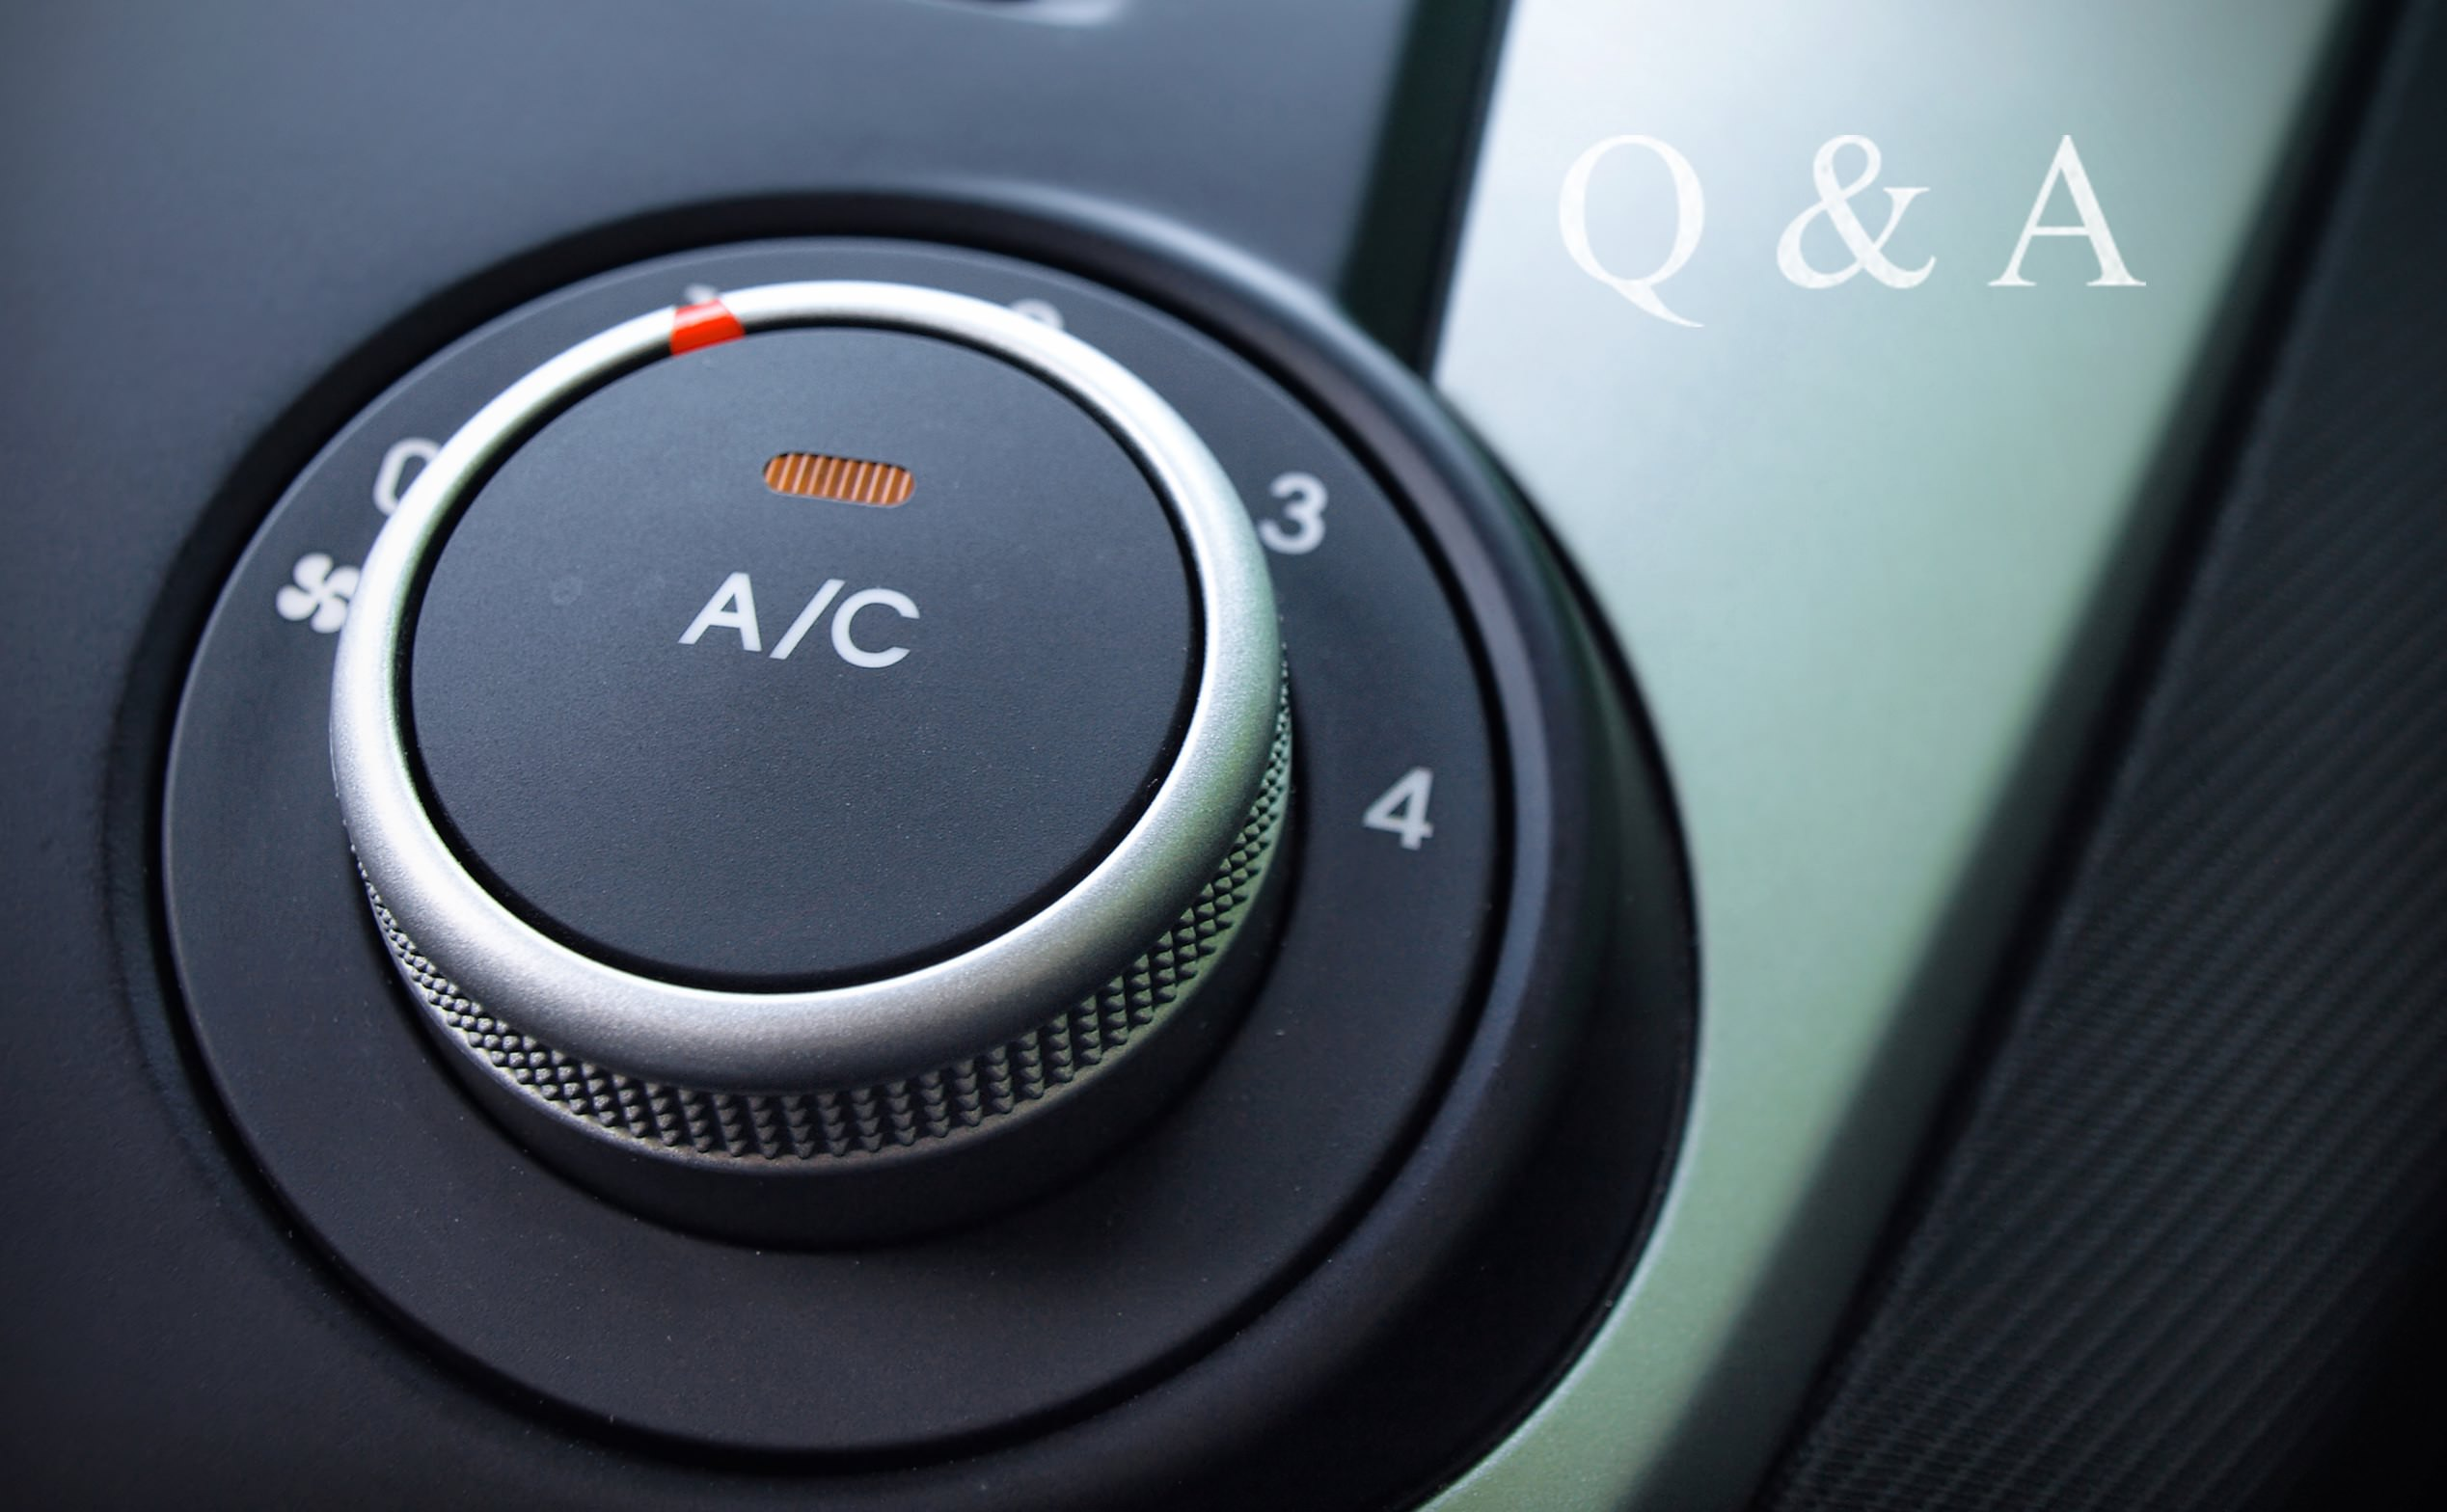 Why does my car's air conditioner smell?